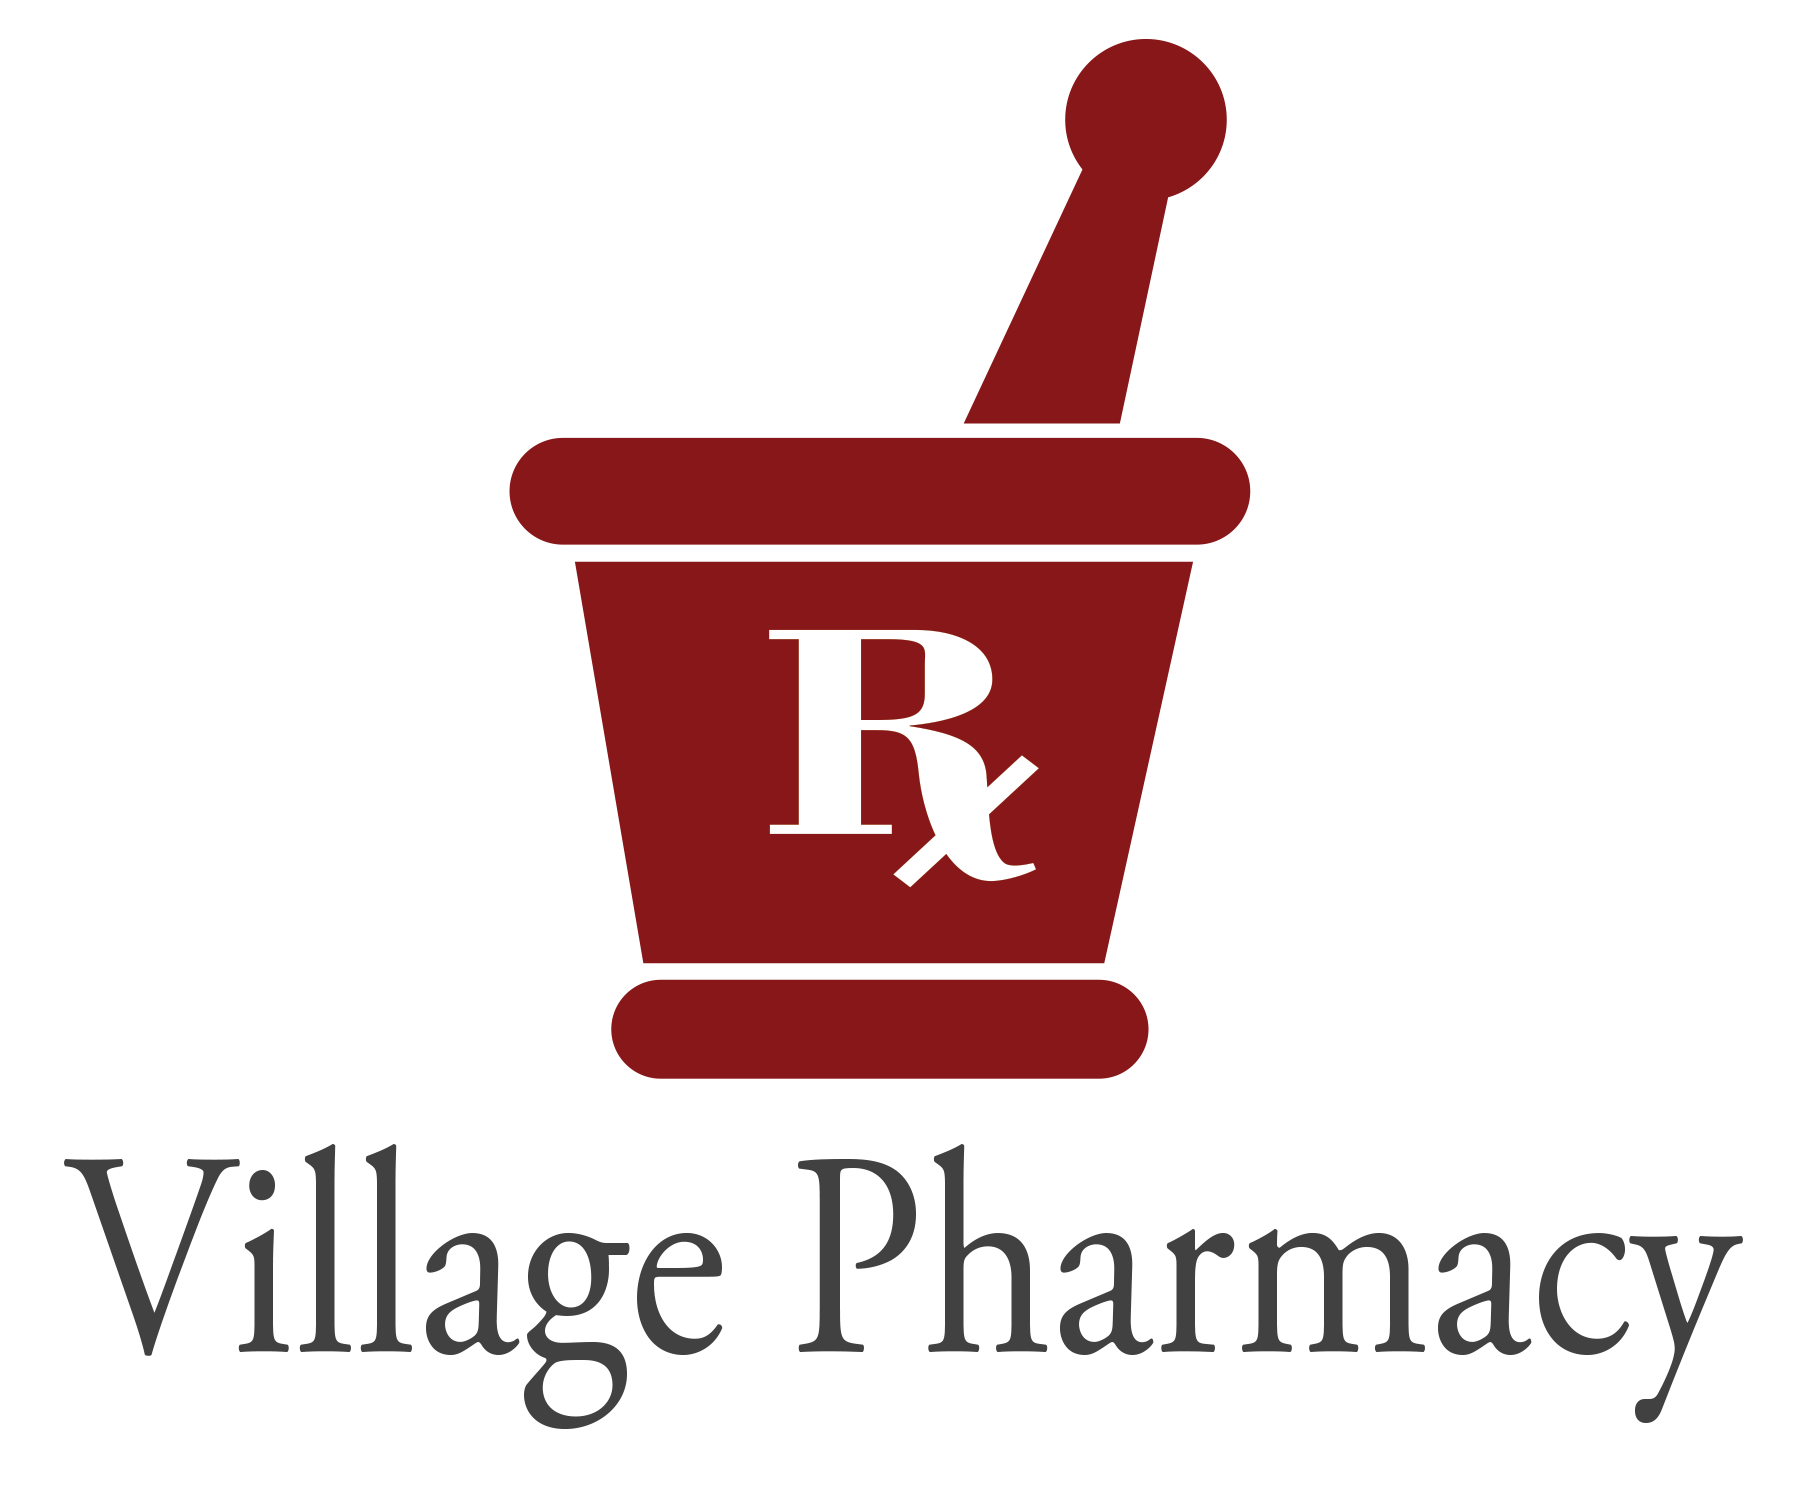 Village Pharmacy - Marblehead